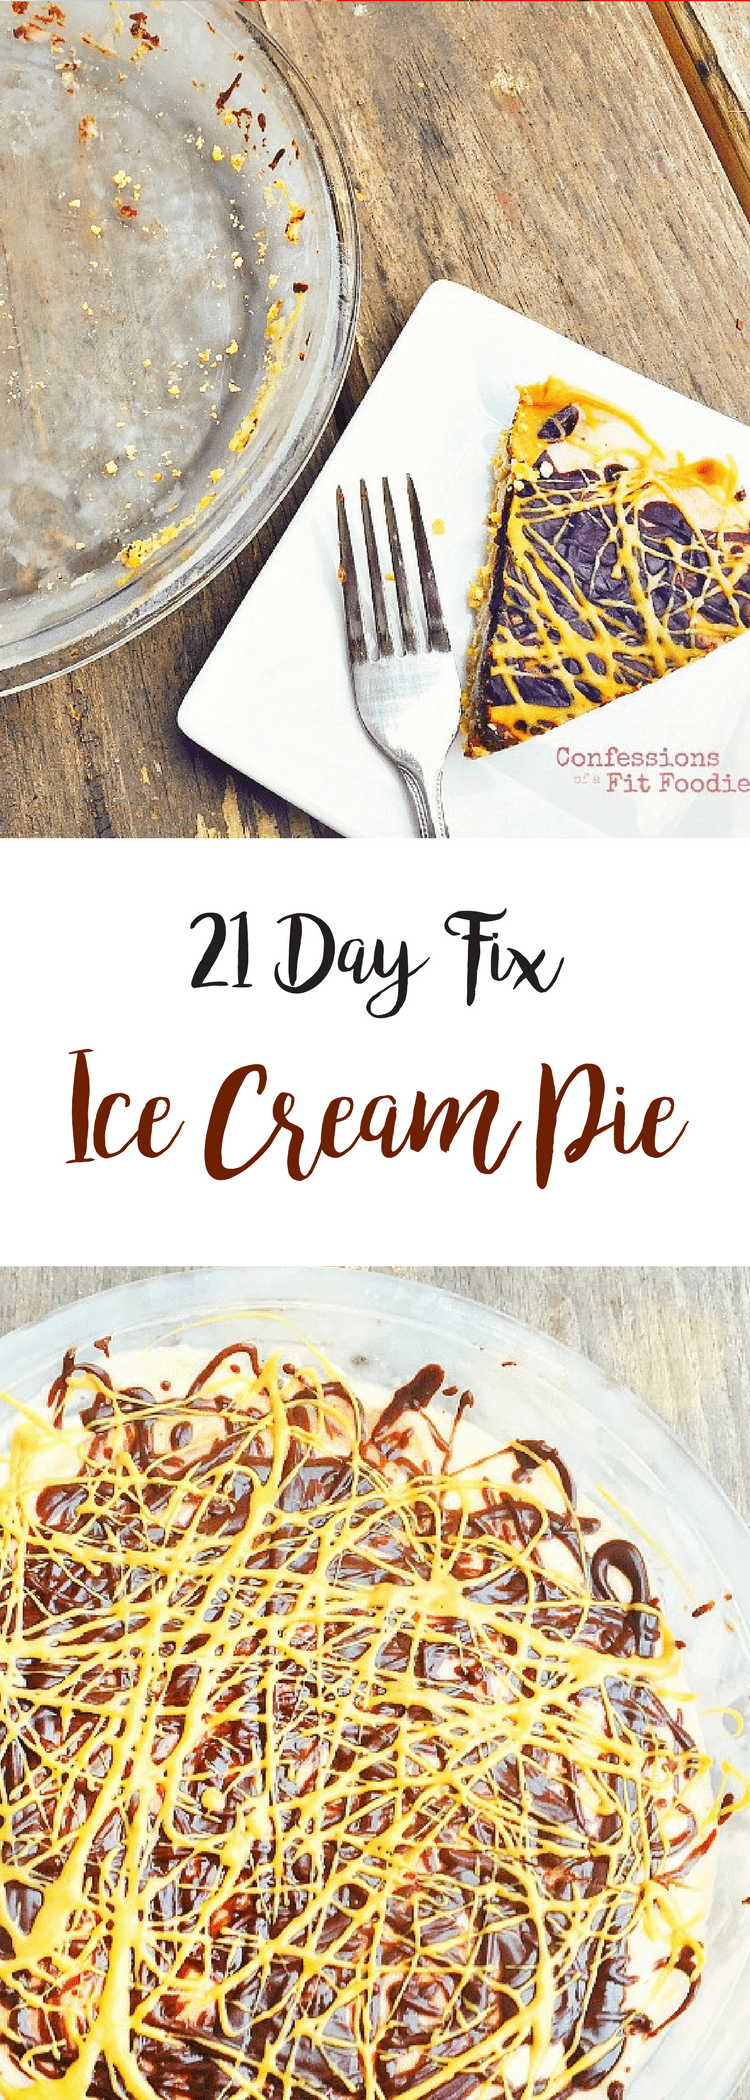 21 Day Fix Ice Cream Pie | Confessions of a Fit Foodie